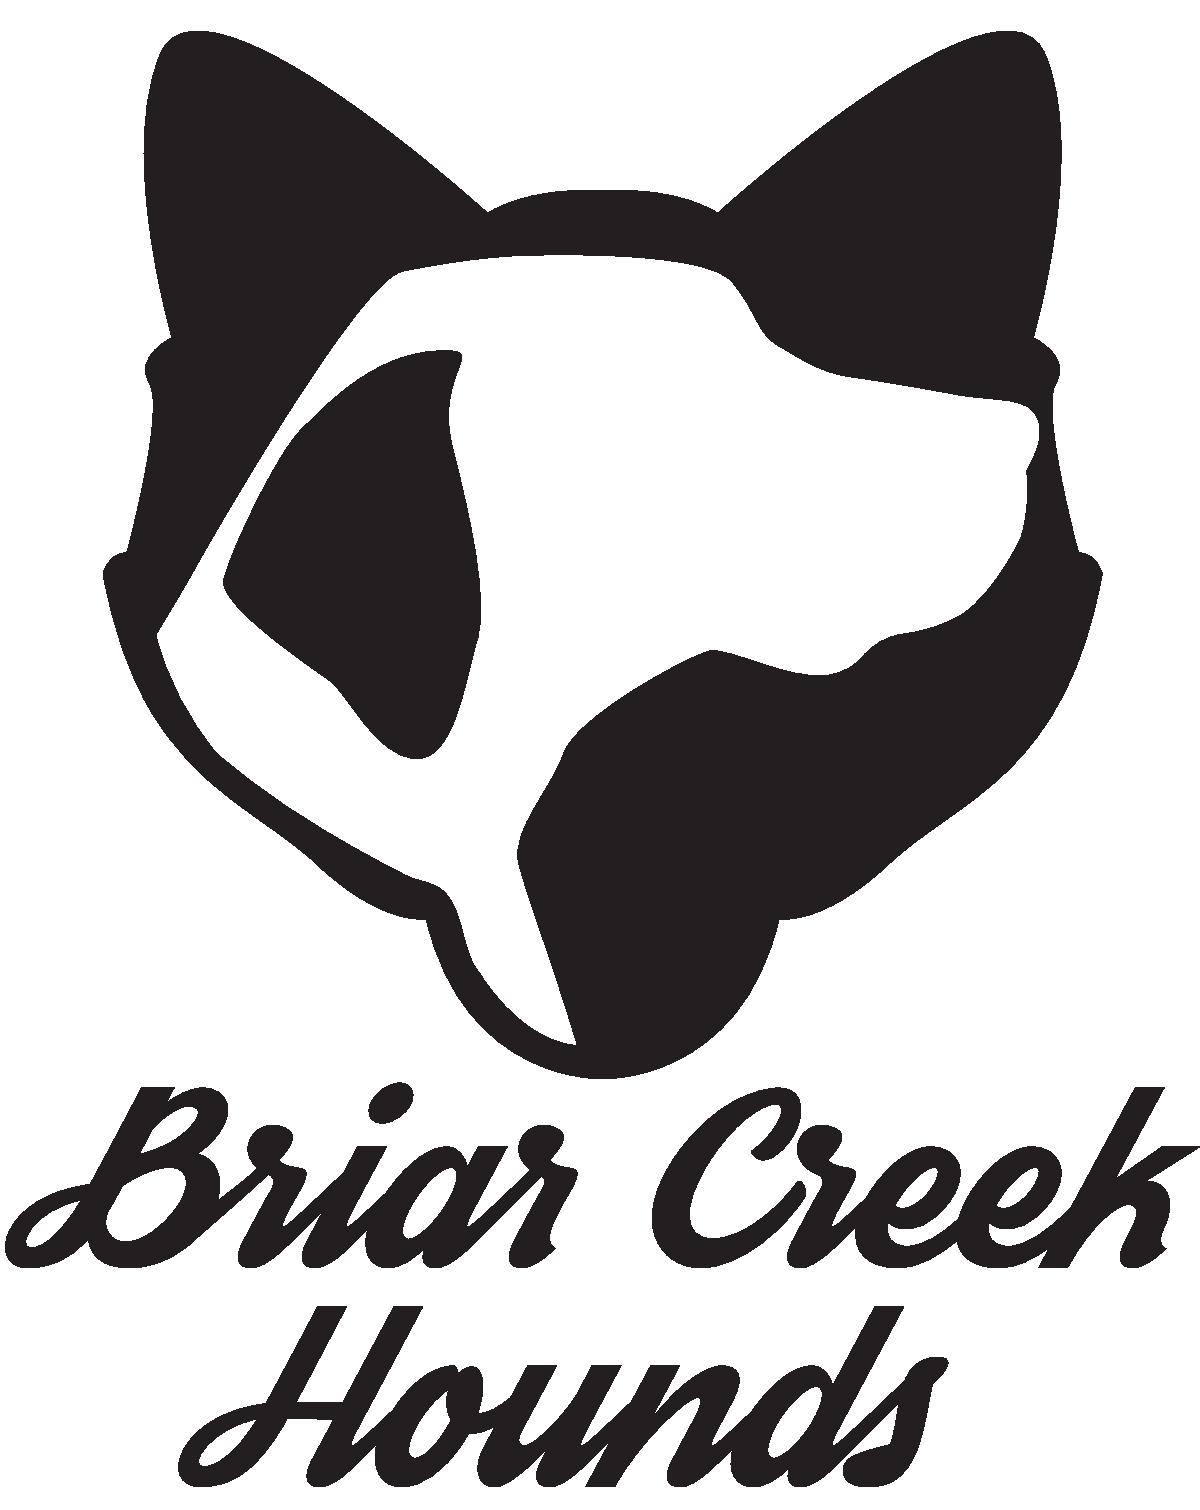 Briar_Creek_Hounds 5-page-001